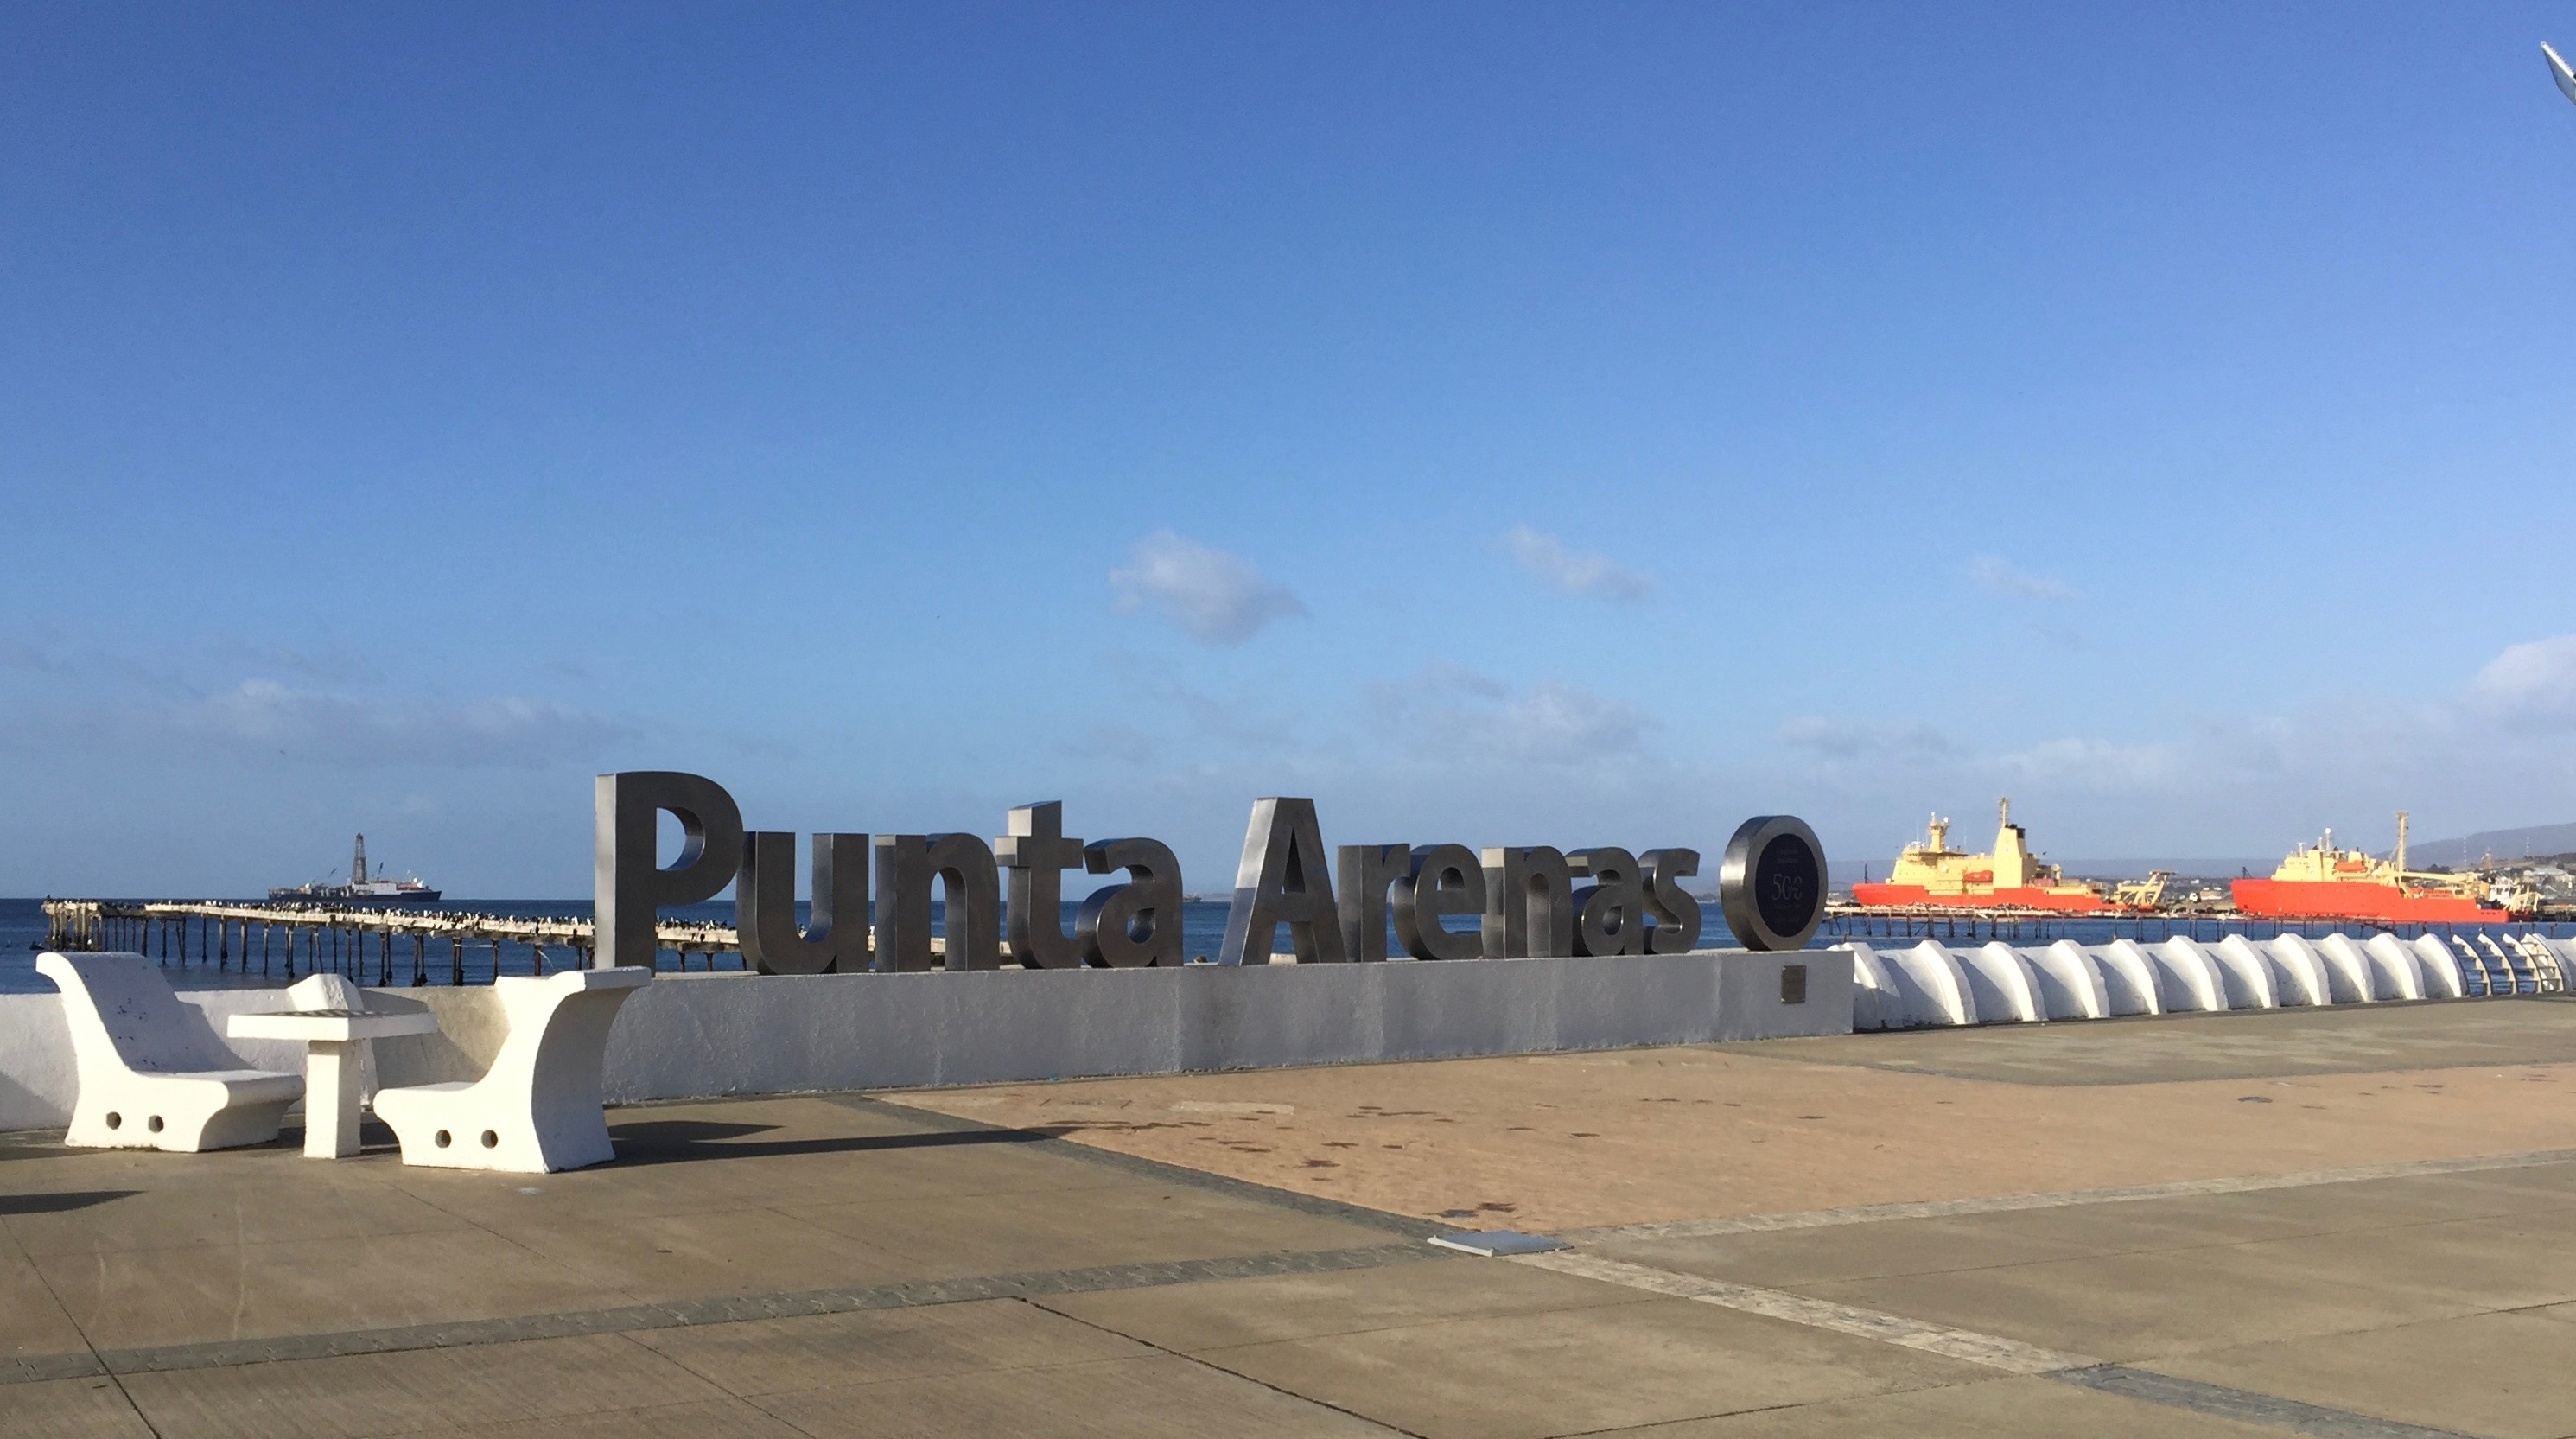 Three ships at anchor with the Punta Arenas sign in the foreground